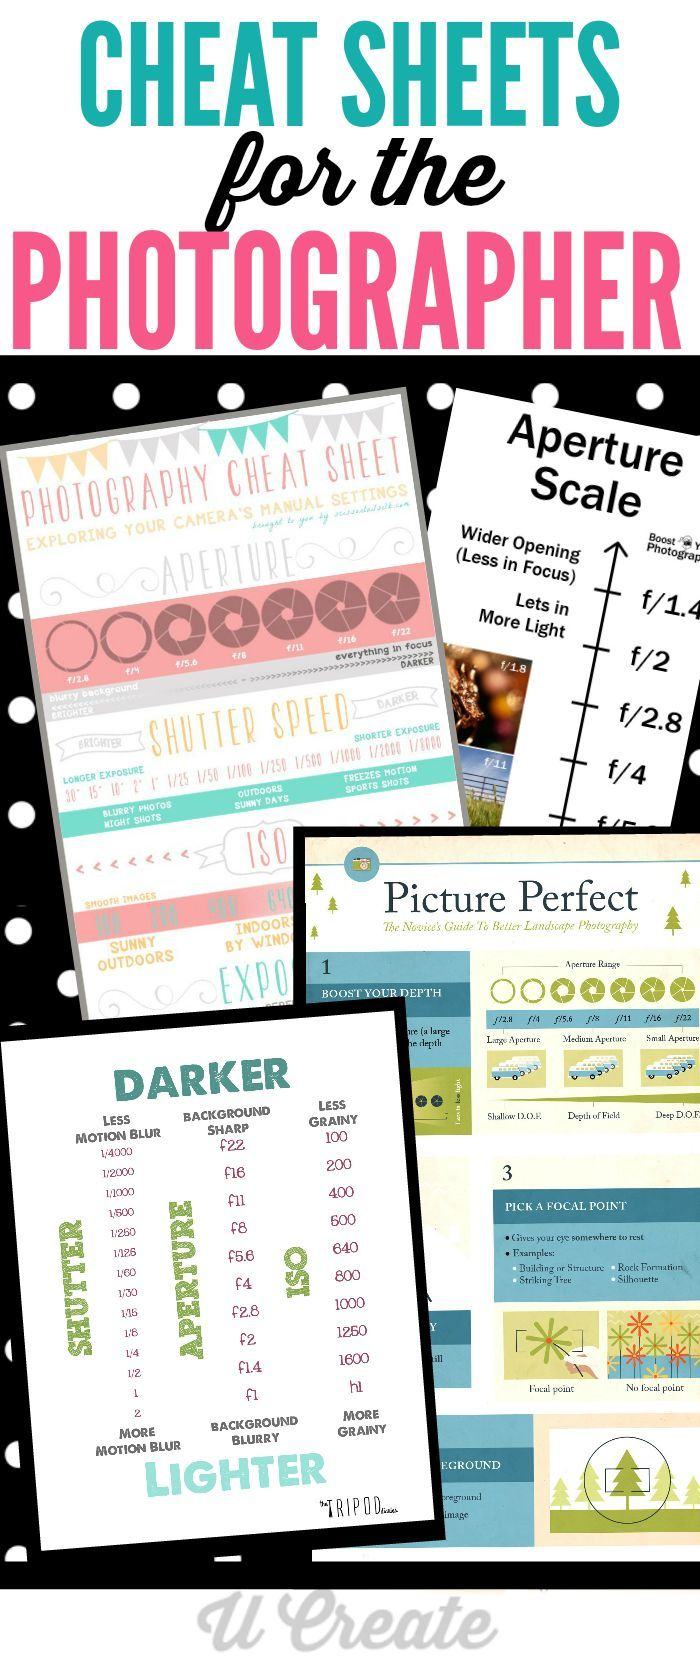 Cheat Sheets for the Photographer